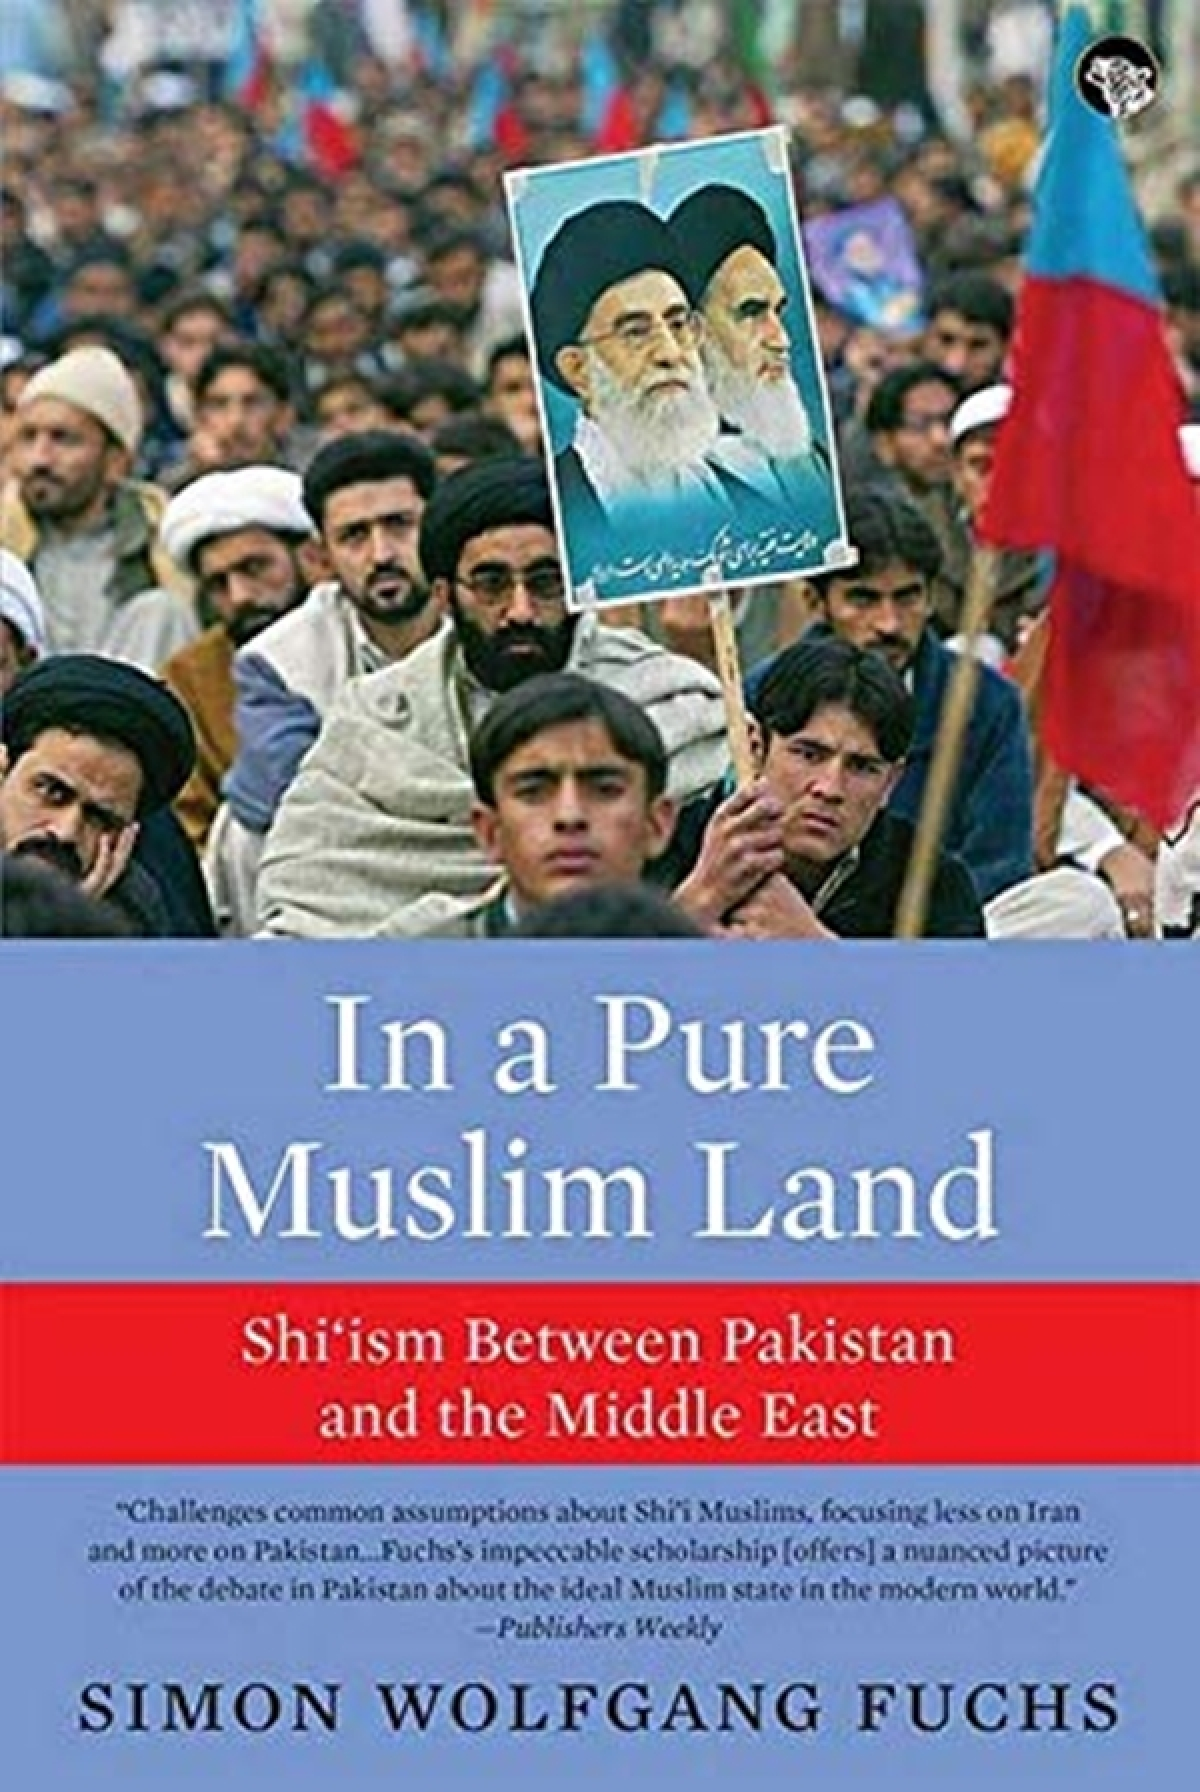 Book Review: A scholarly work on Shi'ism in the Muslim world